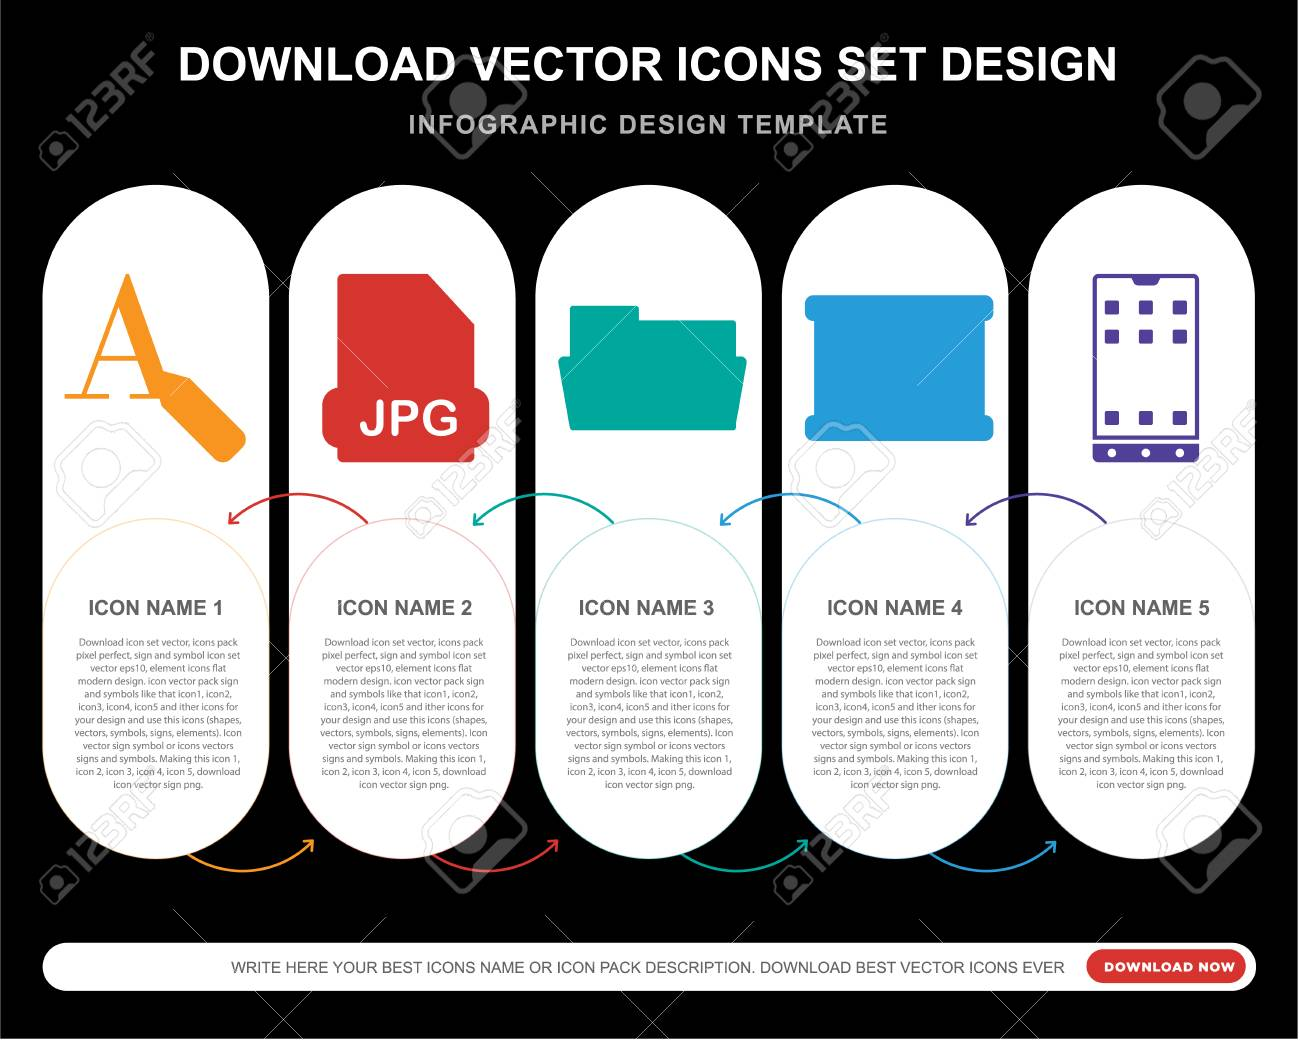 5 vector icons such as Text editor, Jpg, Folder, Map, Smartphone